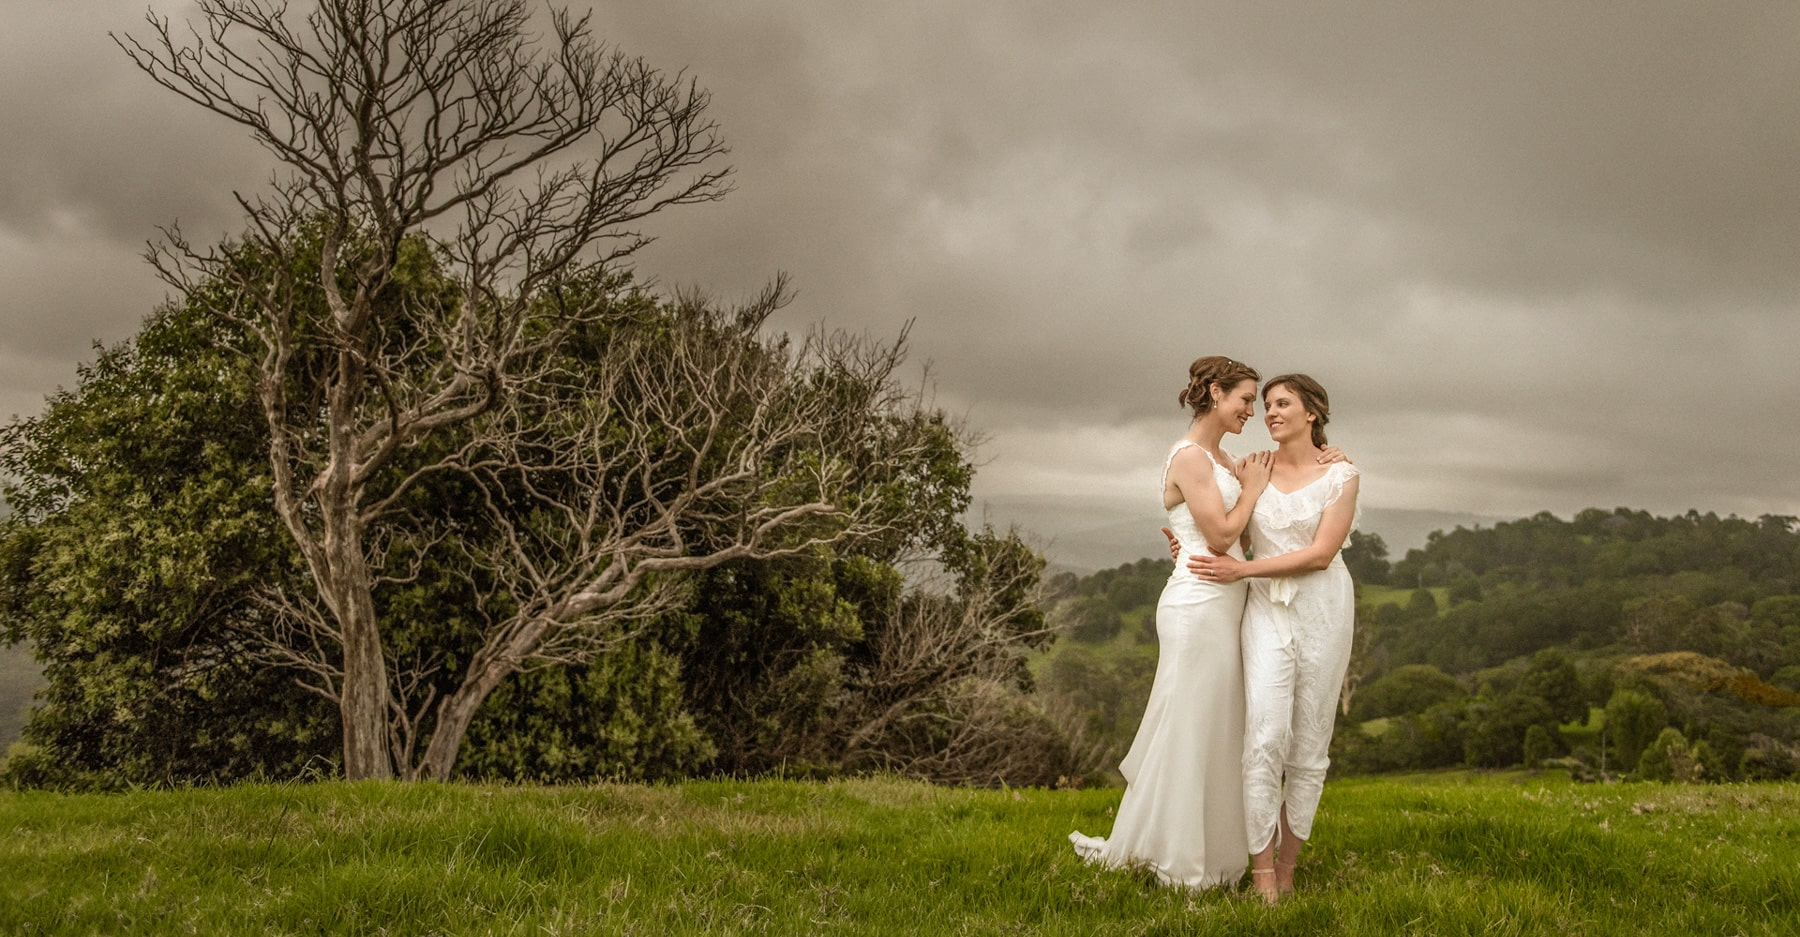 Home  Brisbane Wedding Photographer  Tom Hall Photography